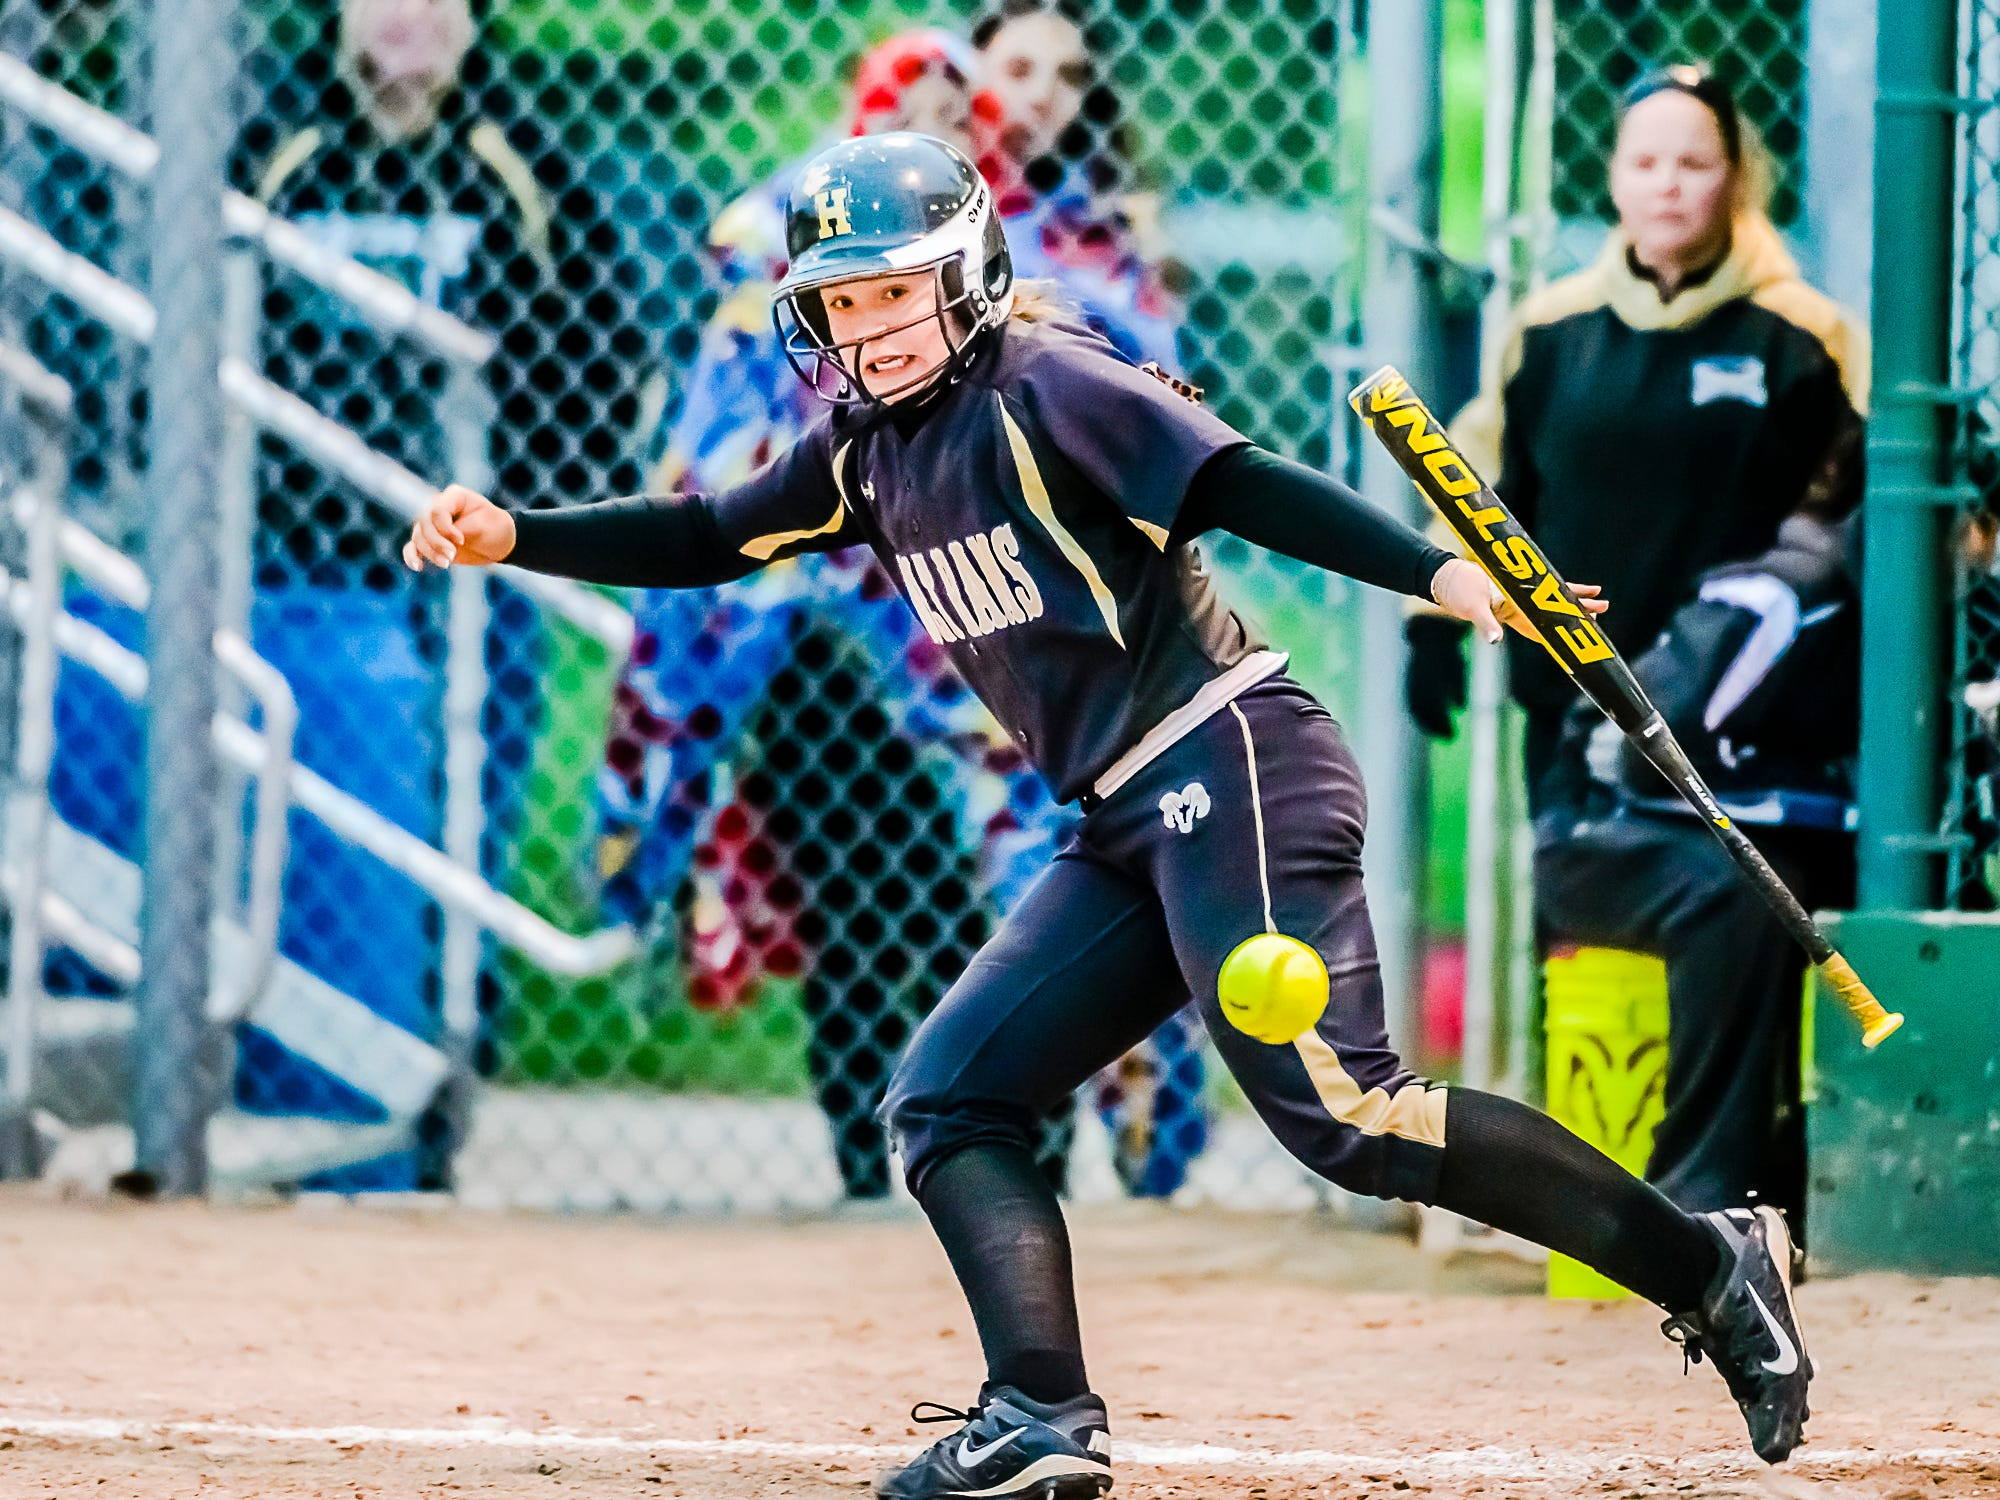 Tracee Hartley of Holt watches the ball as she takes off for 1st base in the 4th inning of the Rams' Softball Classic championship game with St. Johns Tuesday May 19, 2015 at Ranney Park in Lansing. Hartley would reach base safely. KEVIN W. FOWLER PHOTO